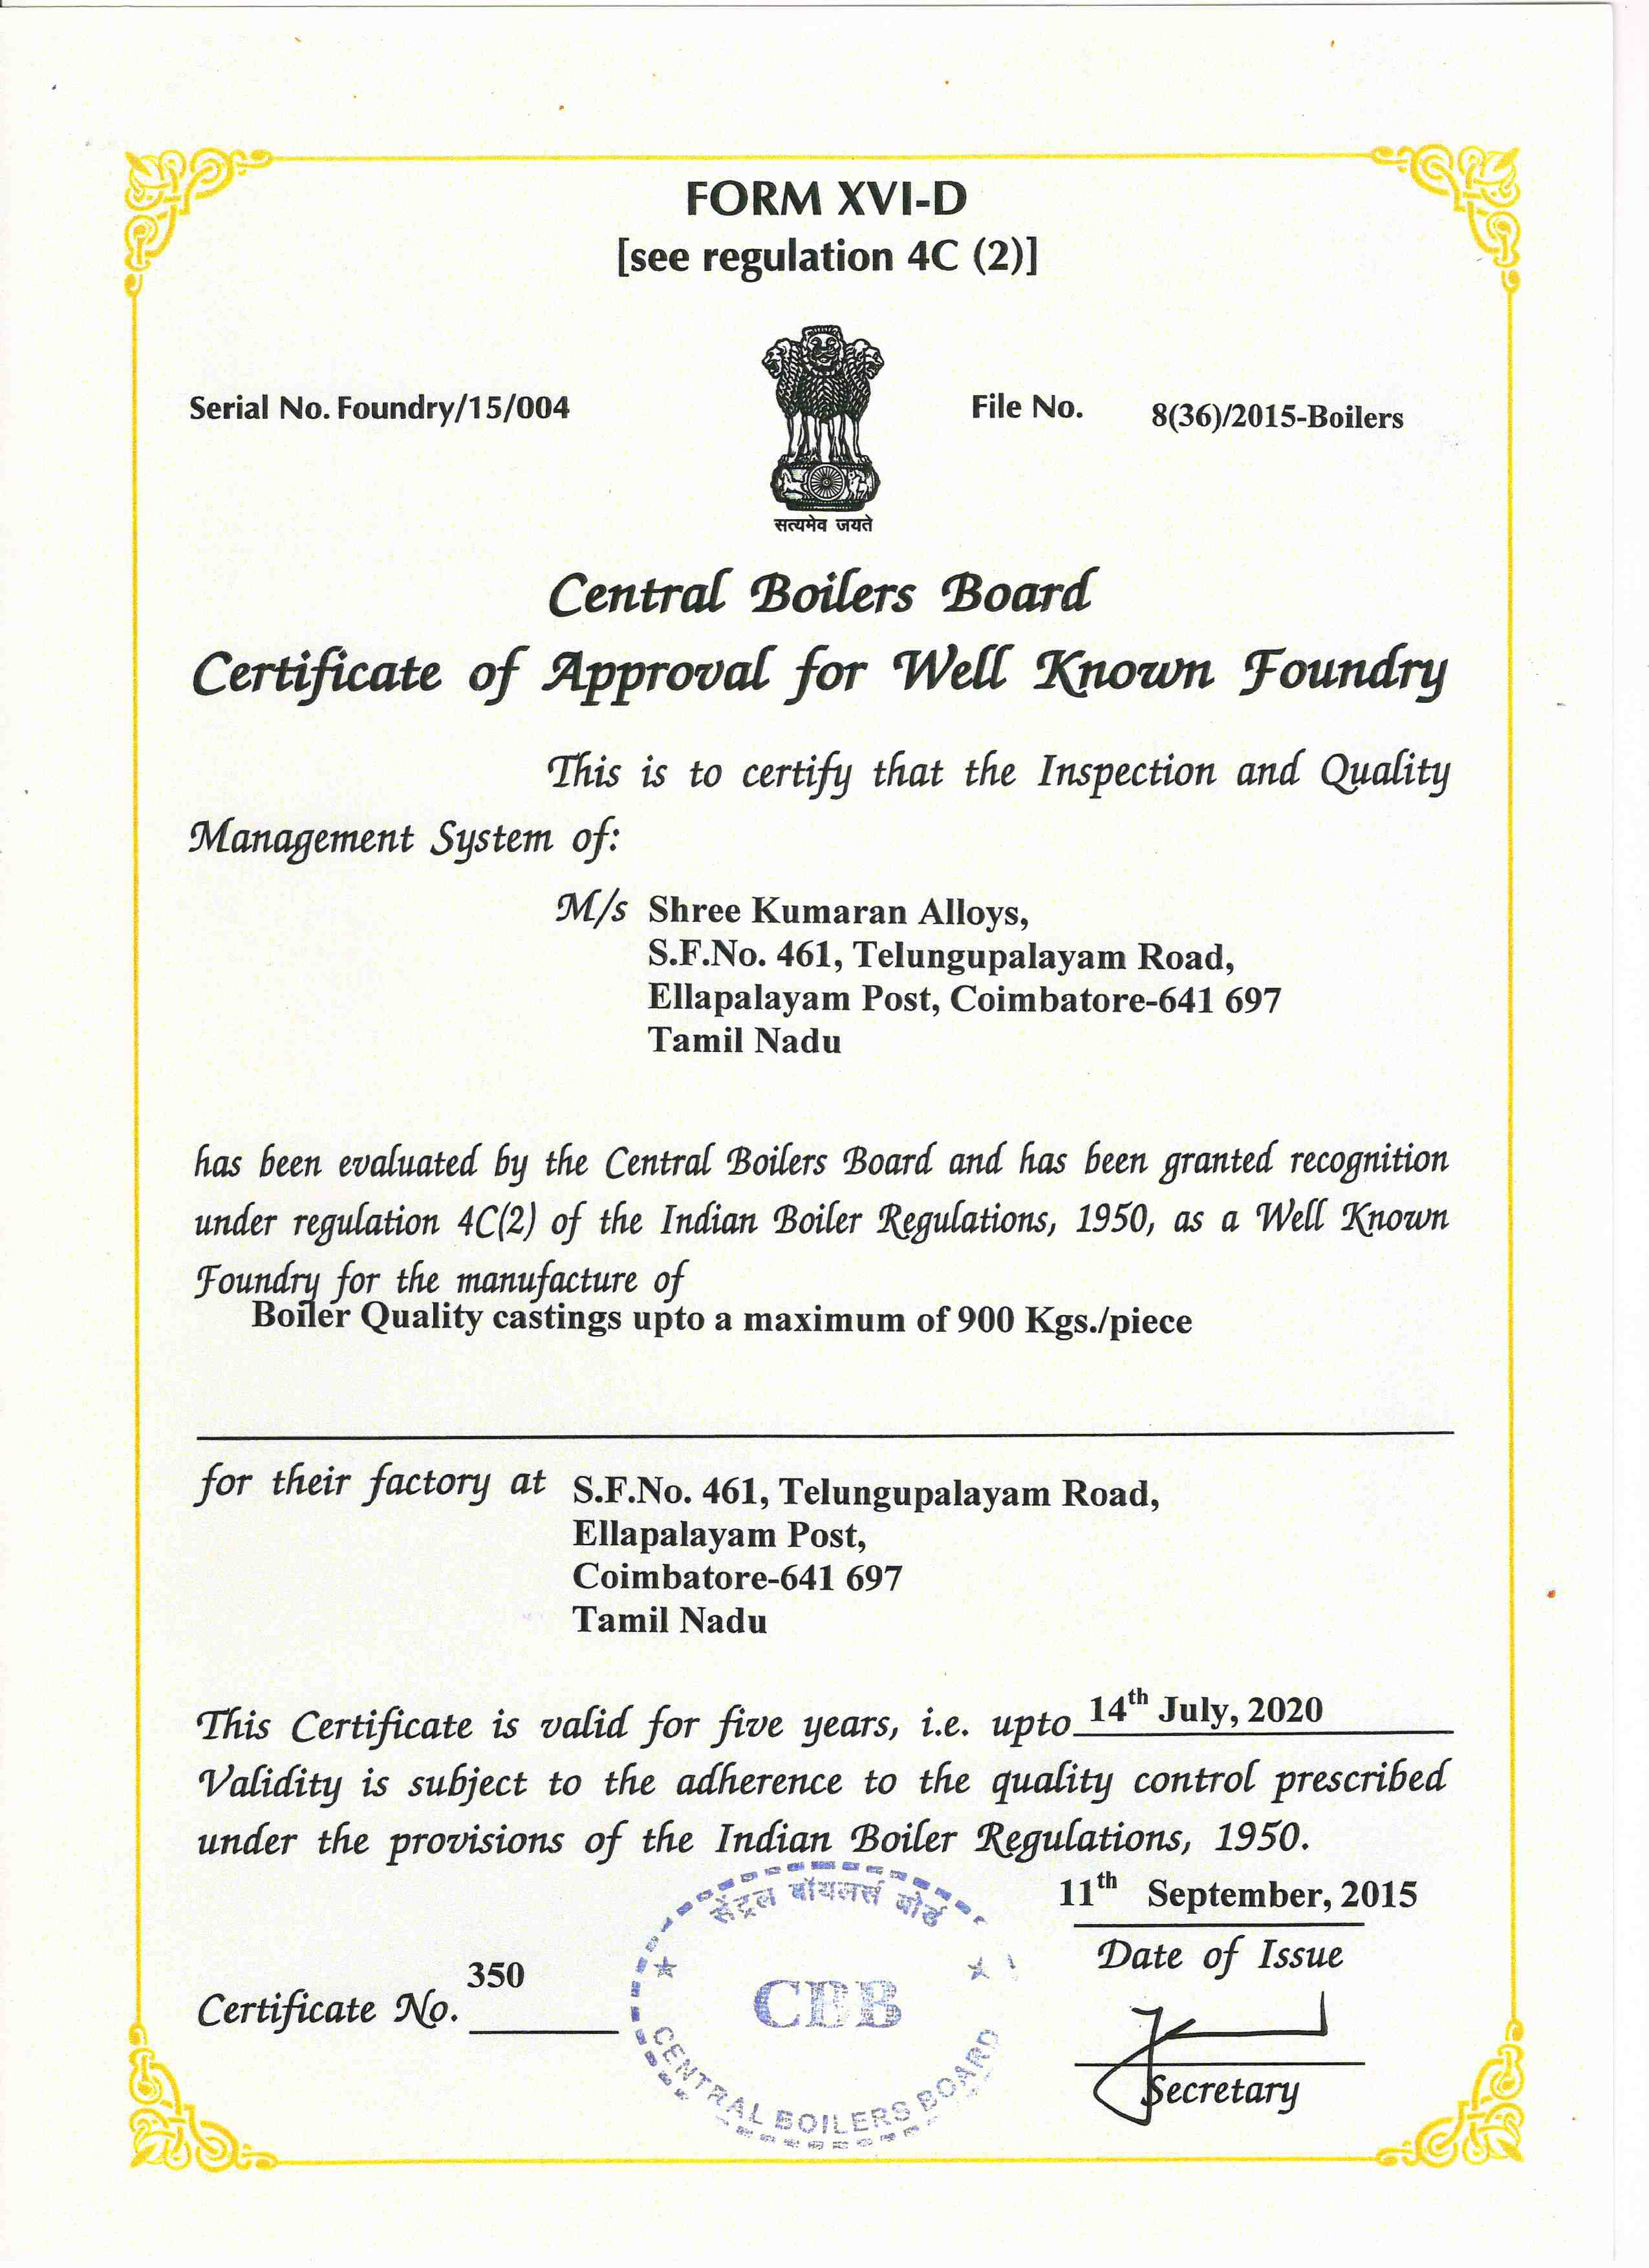 WELL KNOWN CERTIFICATE 2020